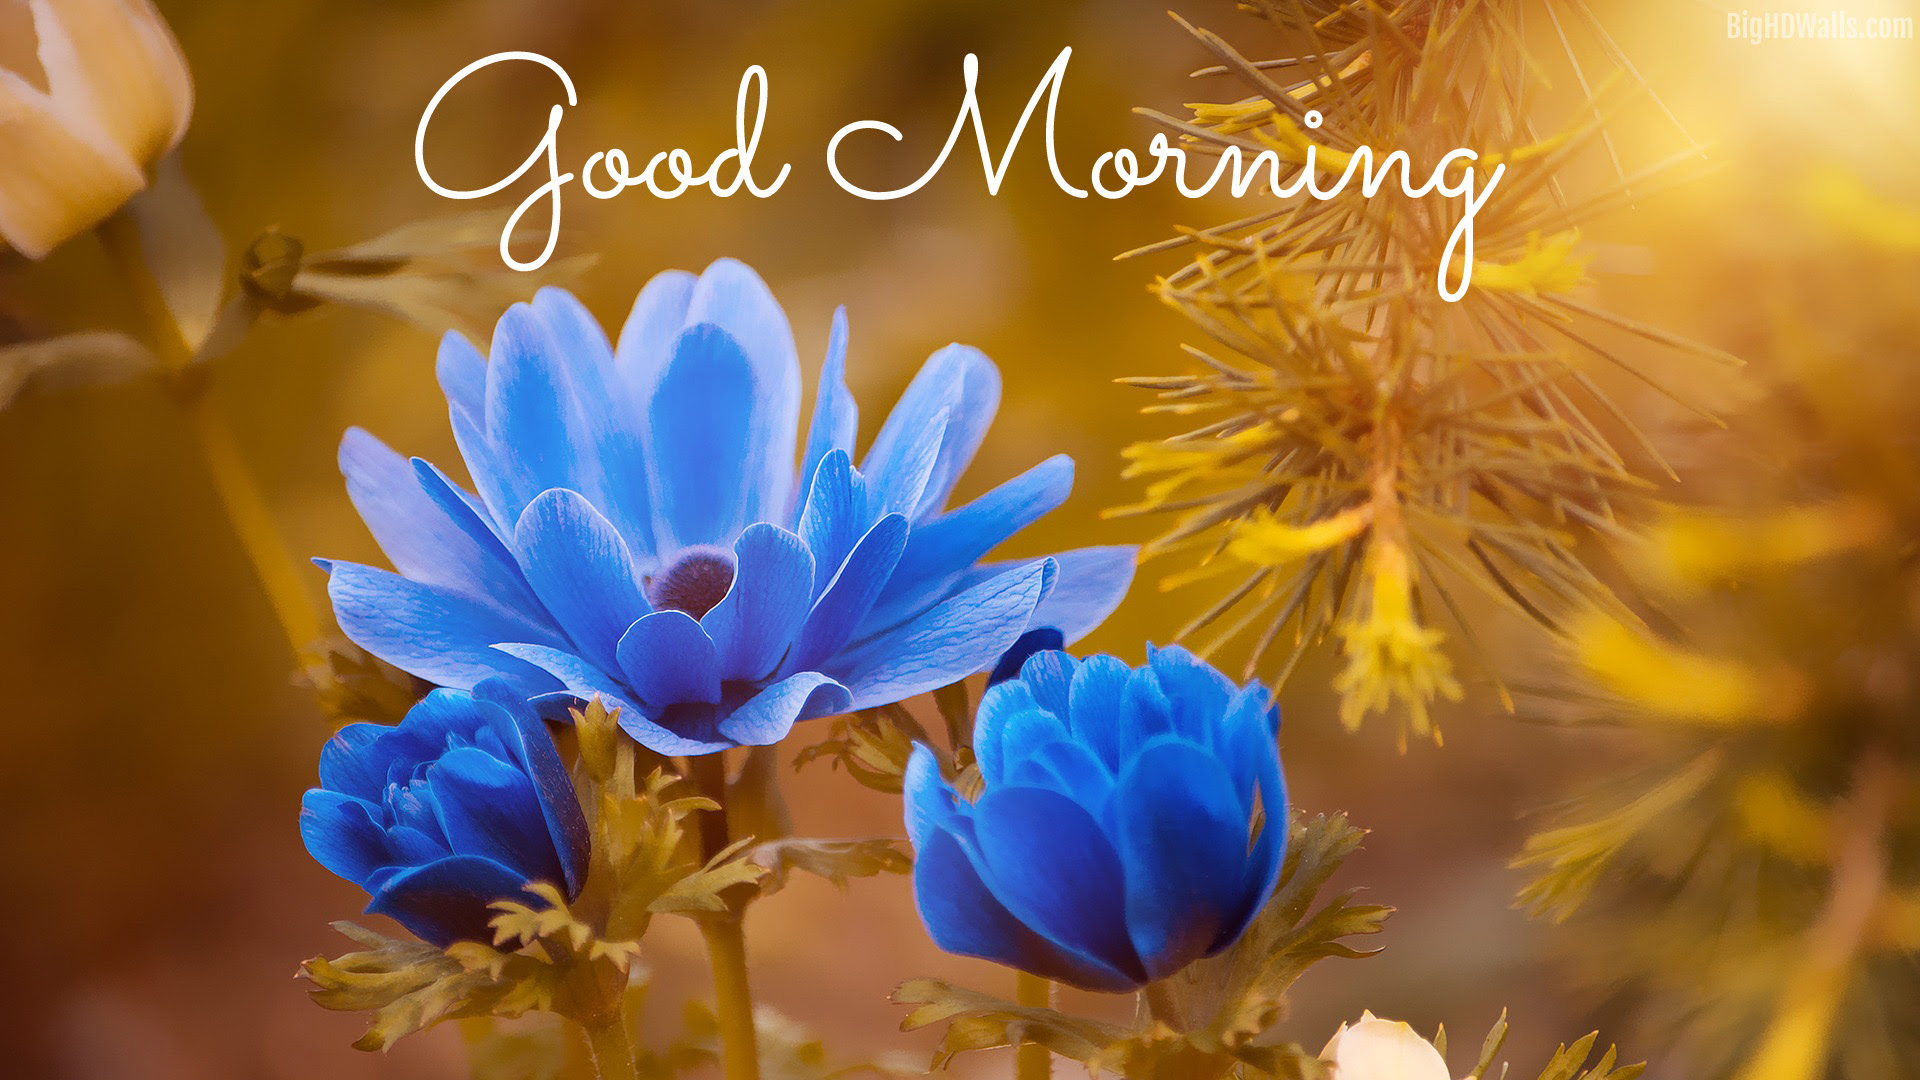 4k Good Morning Wallpapers High Quality Download Free